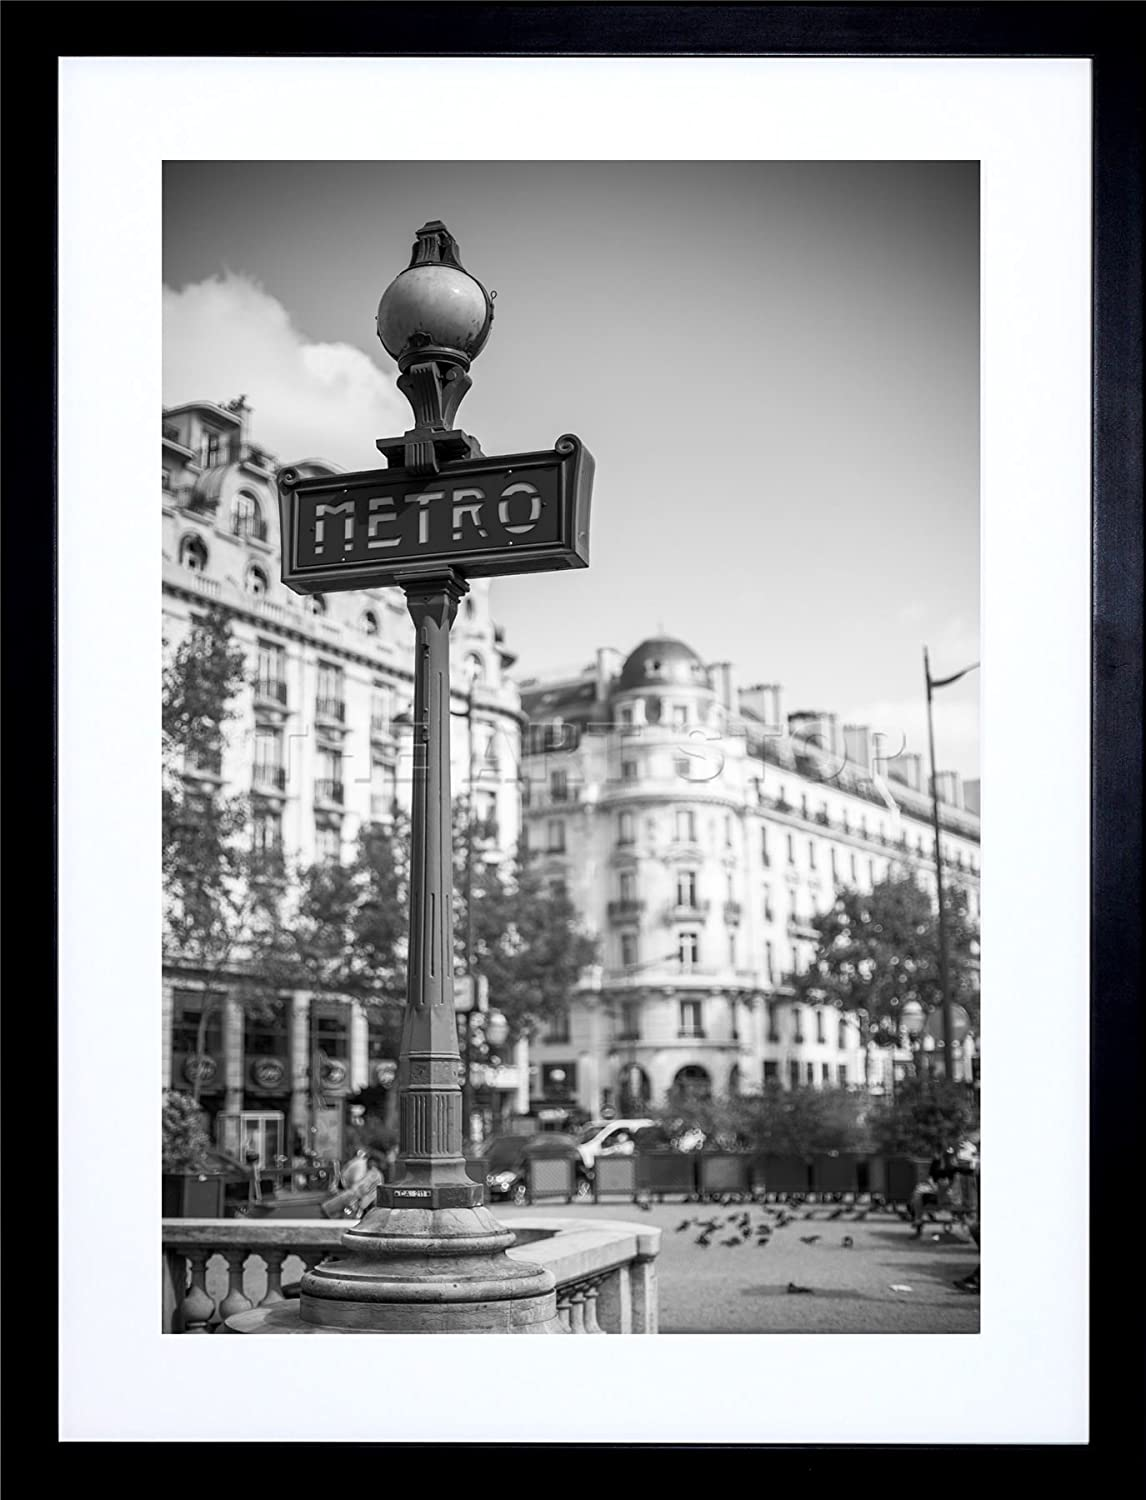 Attractive Framed Black And White Photos Image - Picture Frame Ideas ...